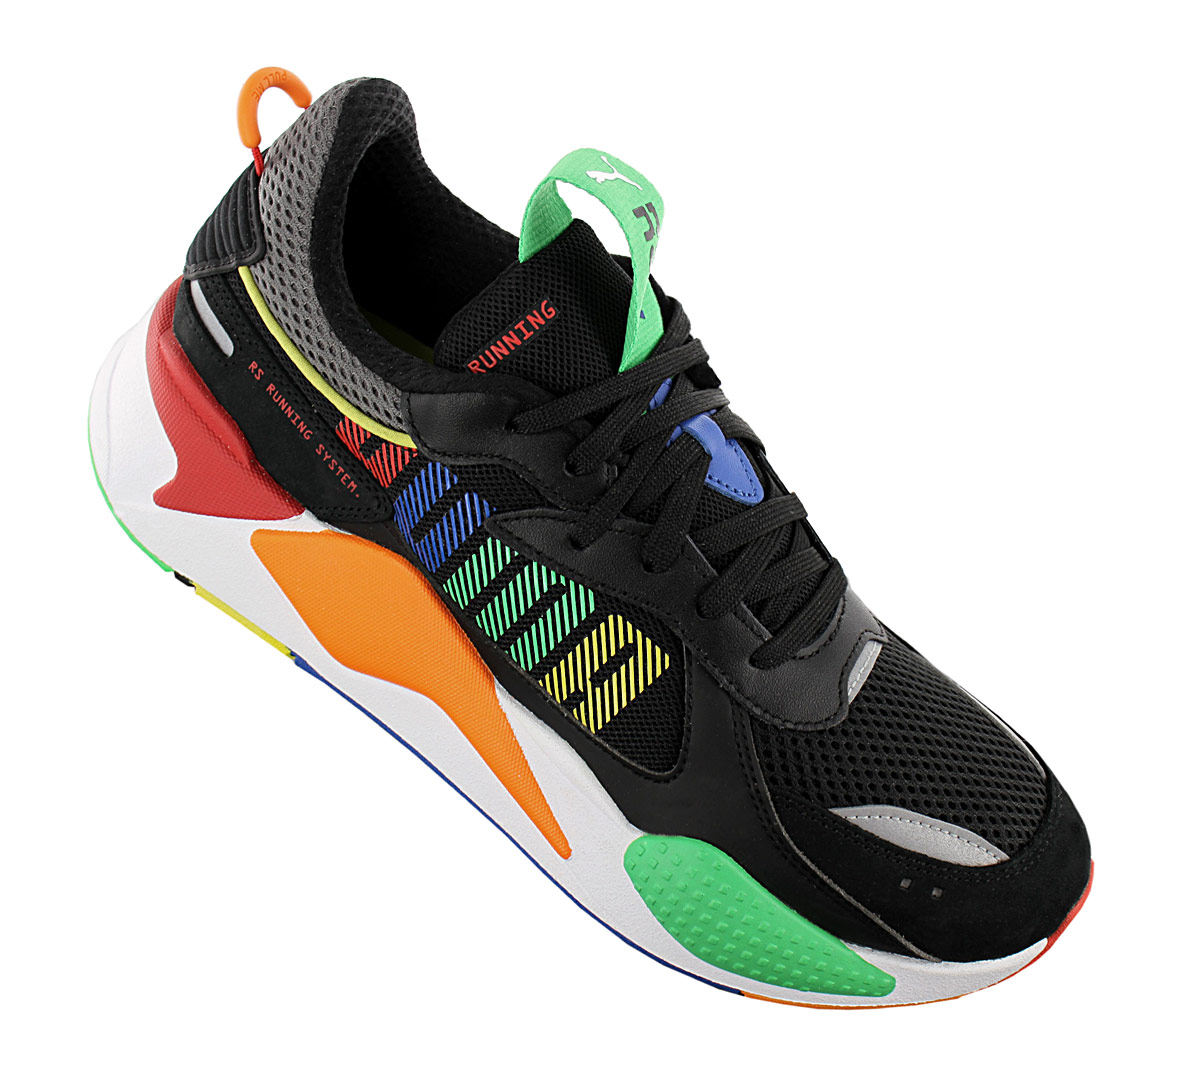 Details about Puma Rs x Bold Sneaker 372715 01 Men's Casual Shoes Sport Shoes Trainers